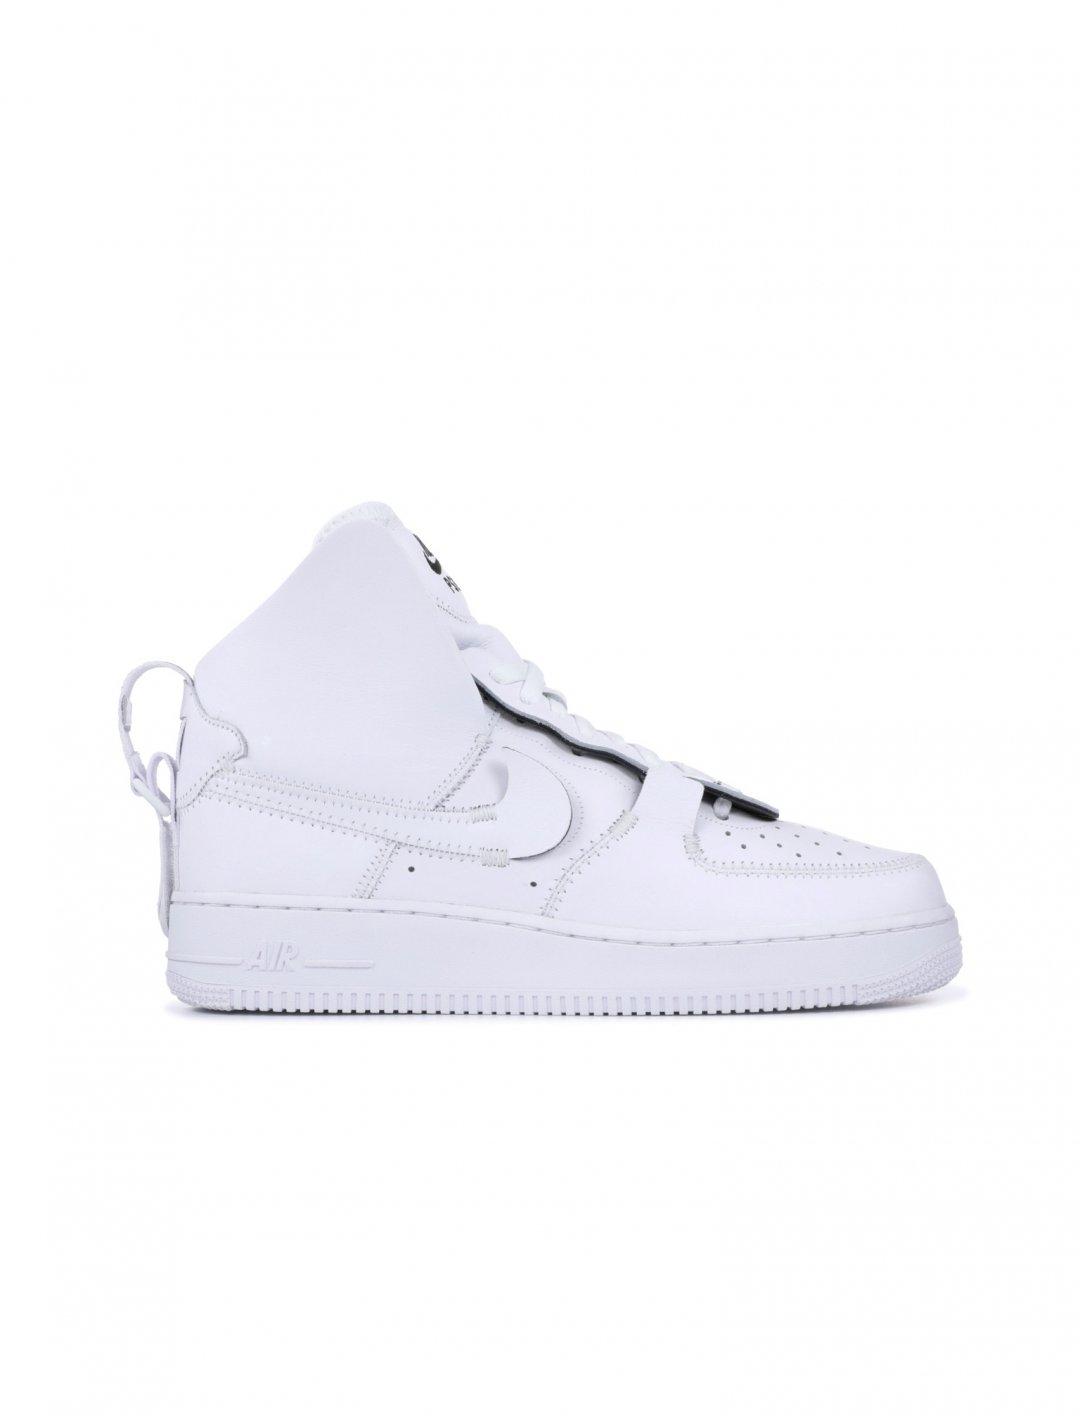 "Air Force 1 High Sneakers {""id"":12,""product_section_id"":1,""name"":""Shoes"",""order"":12} Nike"